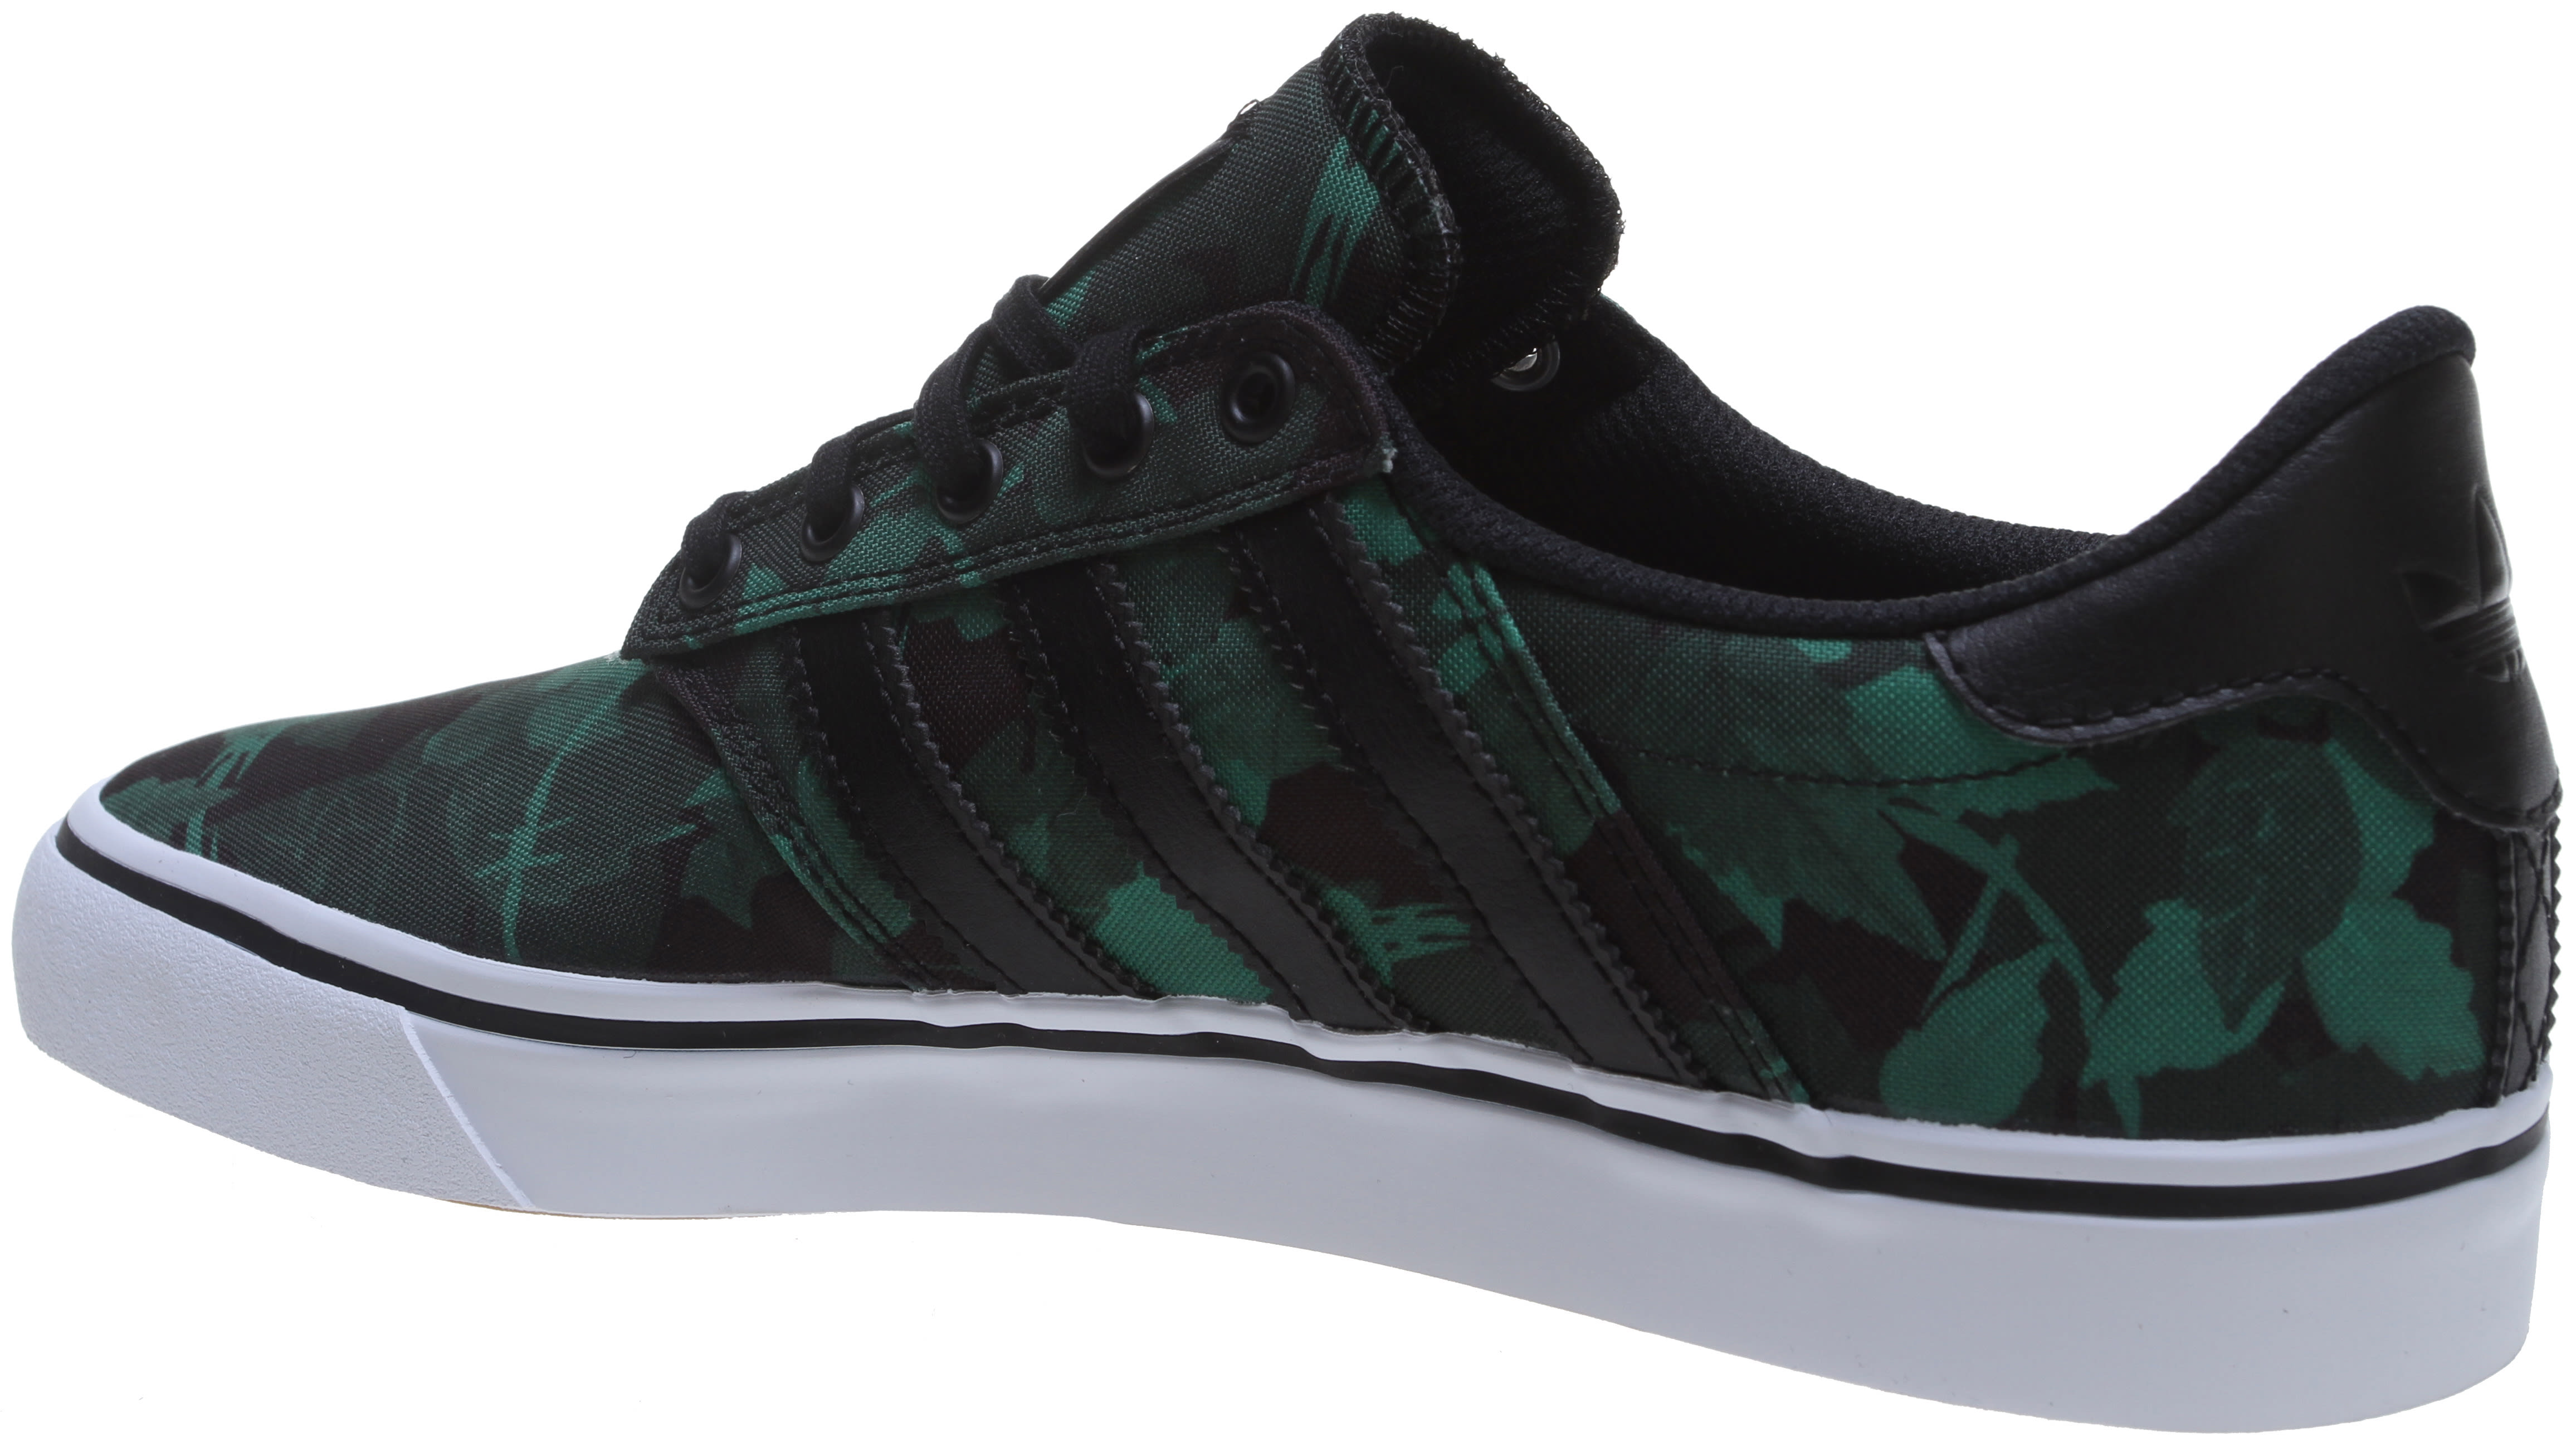 Adidas Seeley Shoes Sale